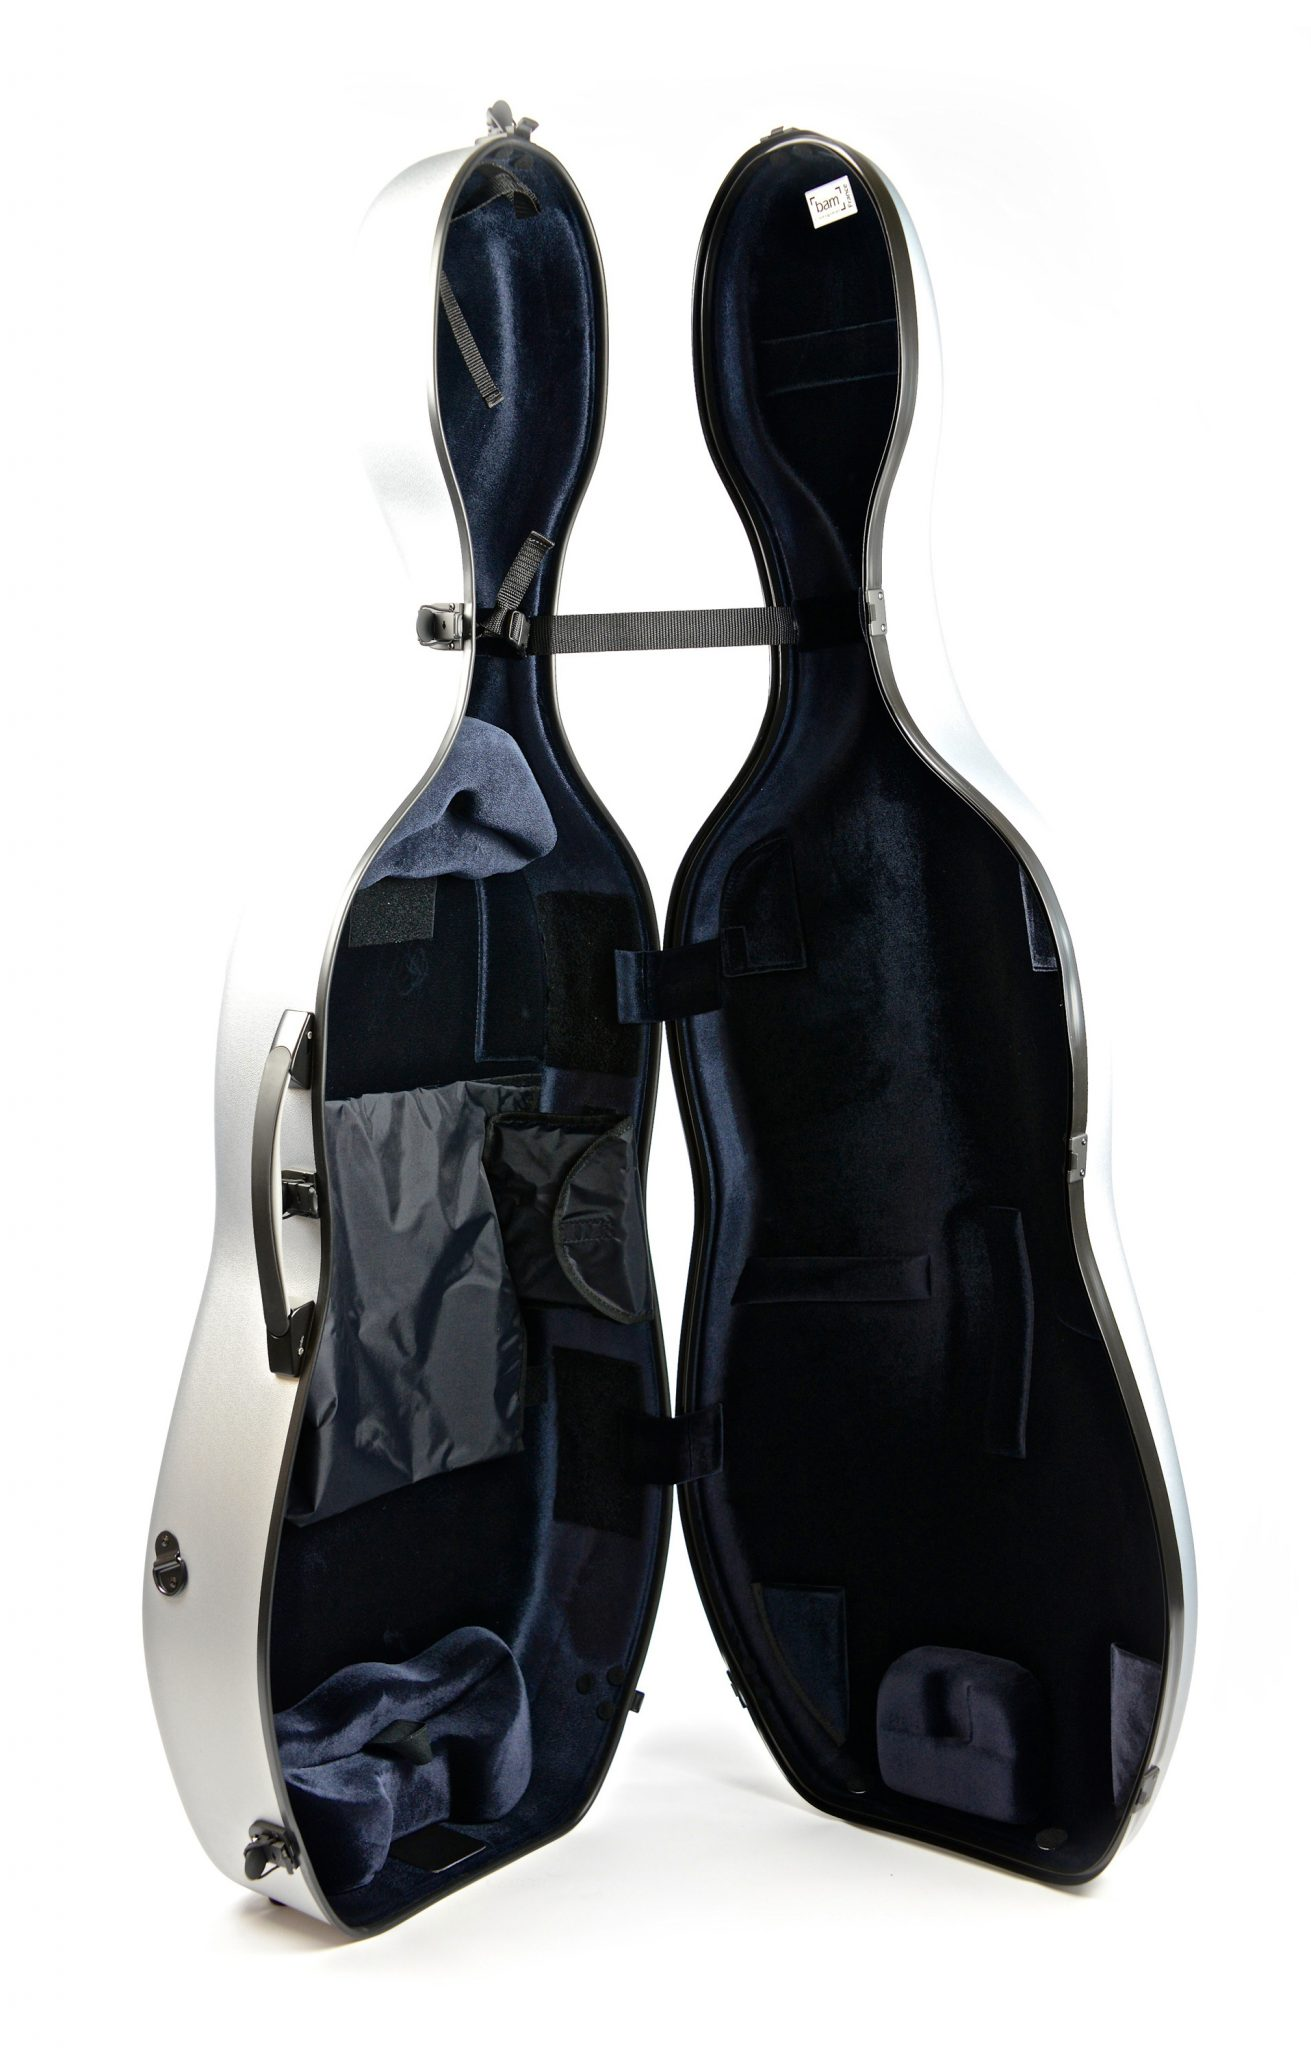 Bam Hightec Cello Case for sale at Bridgewood and Neitzert